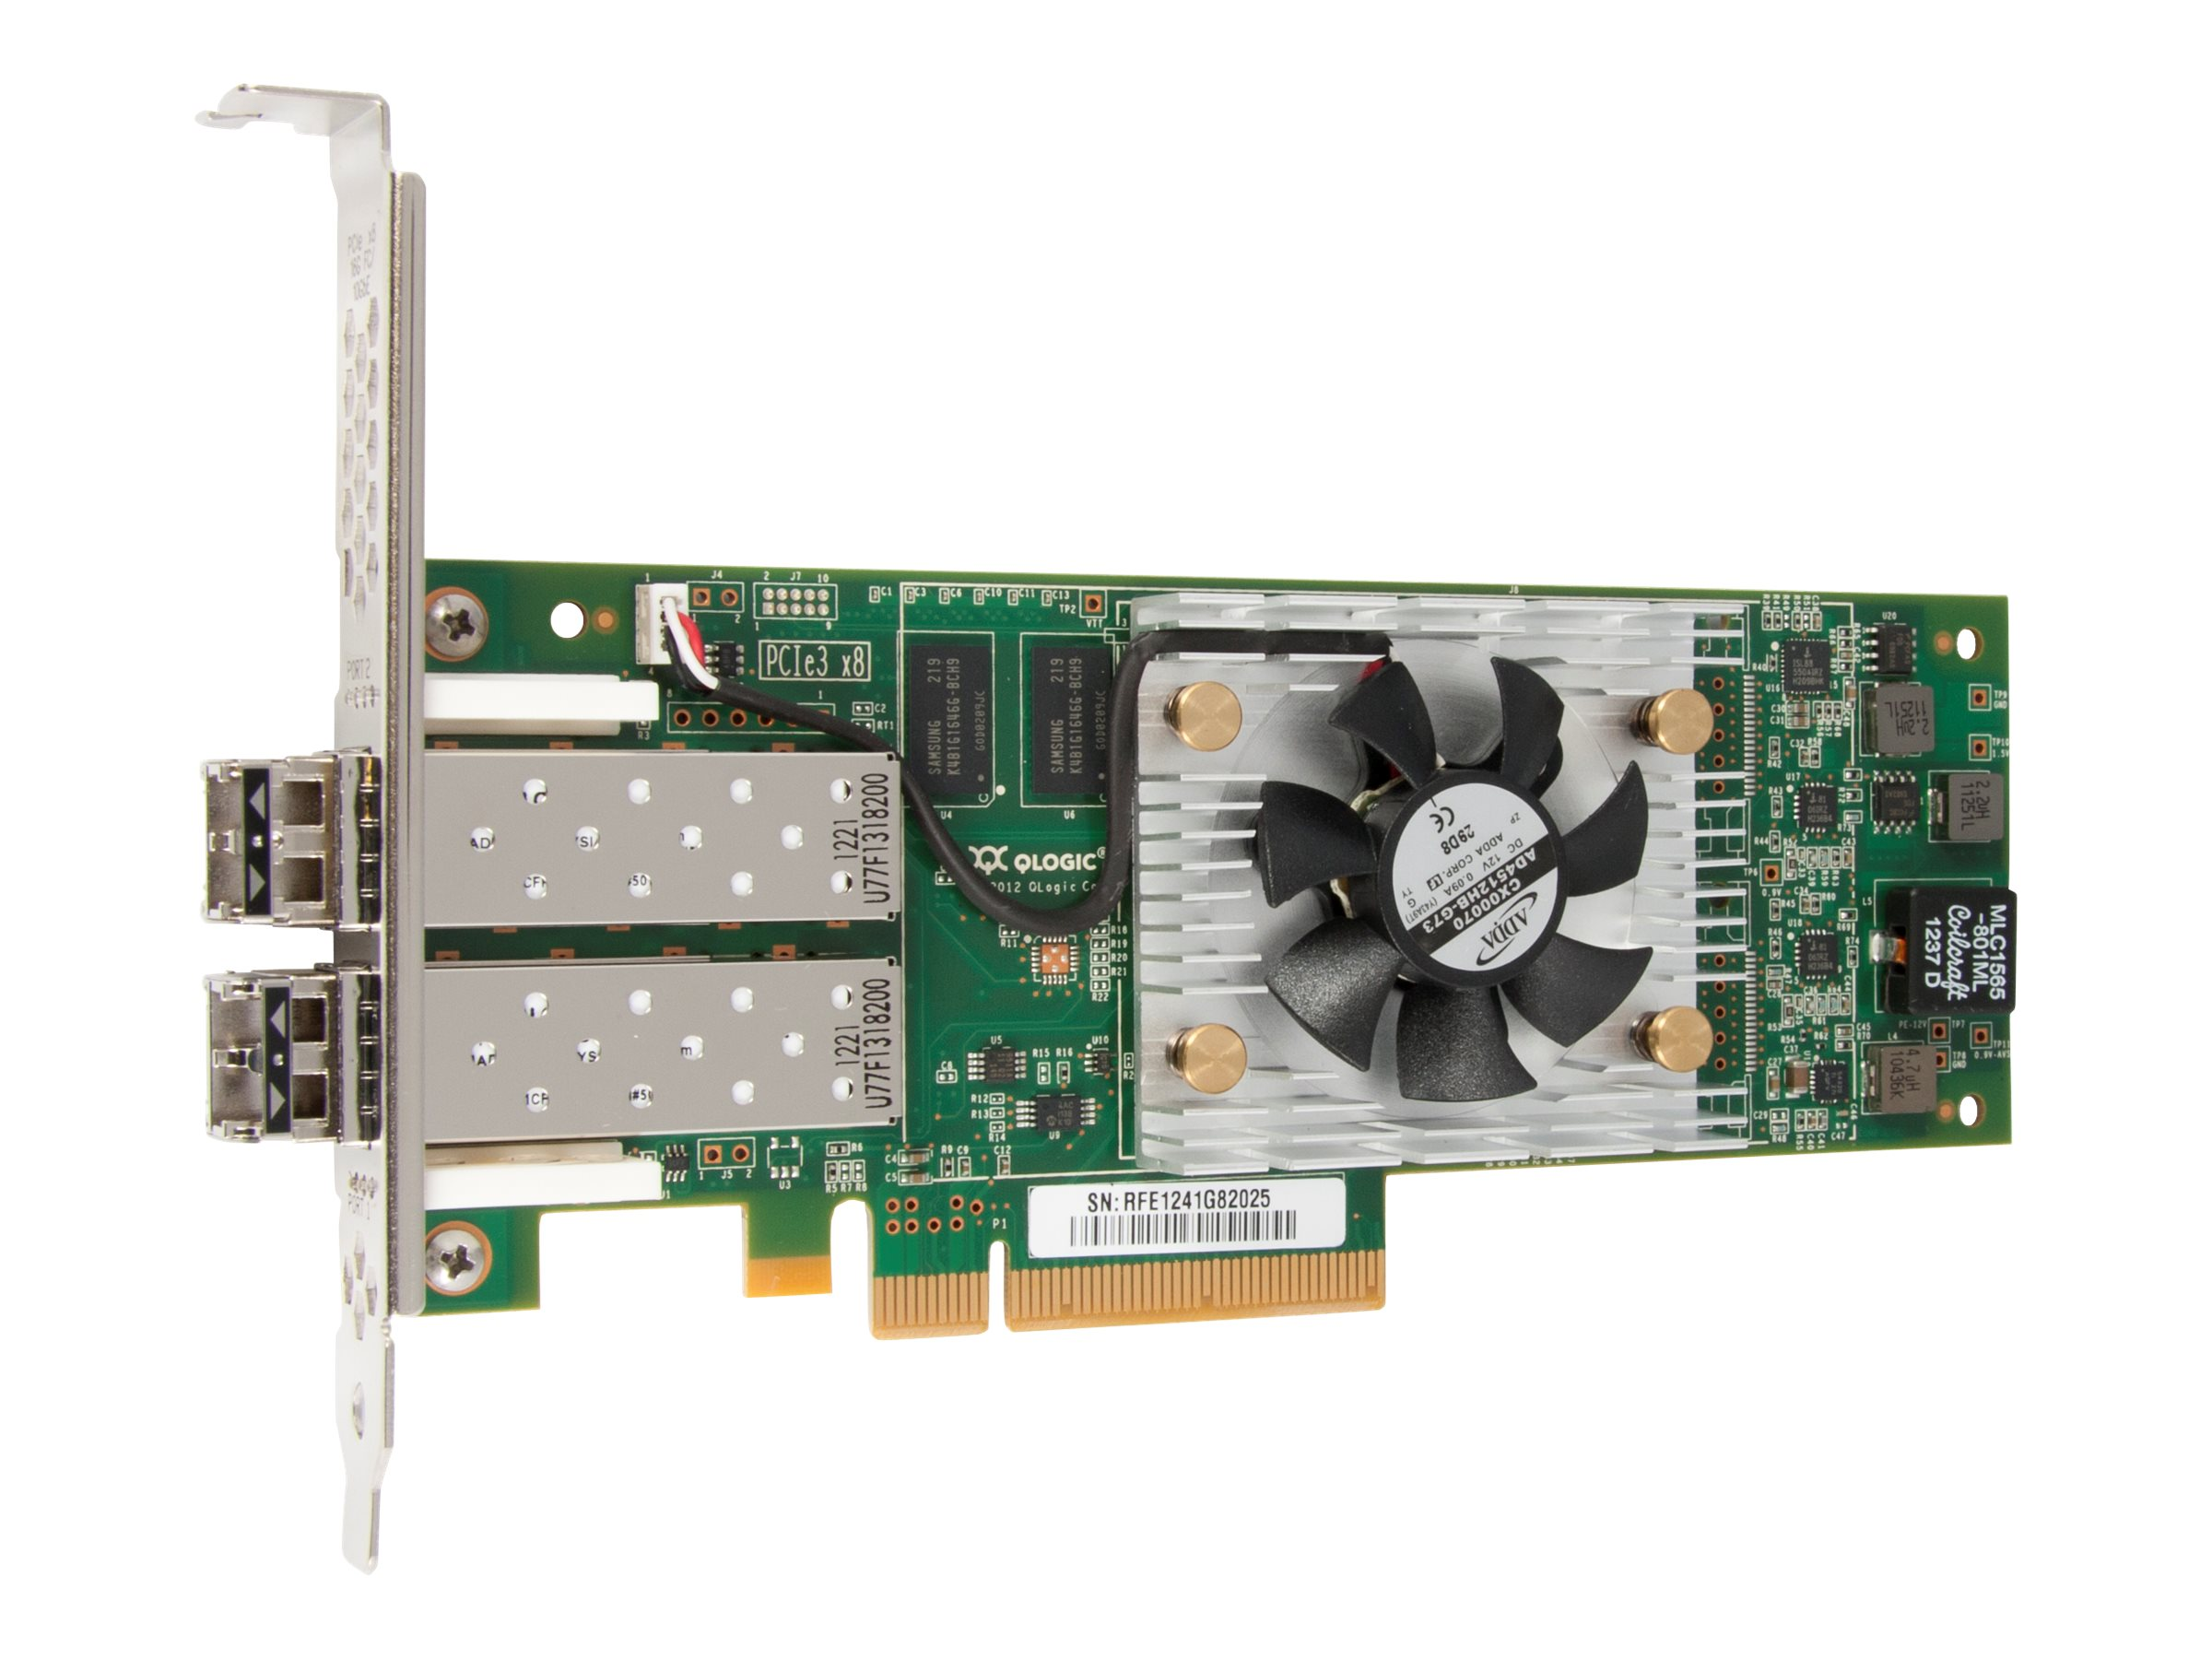 Qlogic 2600 Series Dual-Port 16Gbps Fibre Channel-to-PCIe Adapters, QLE2672-CK